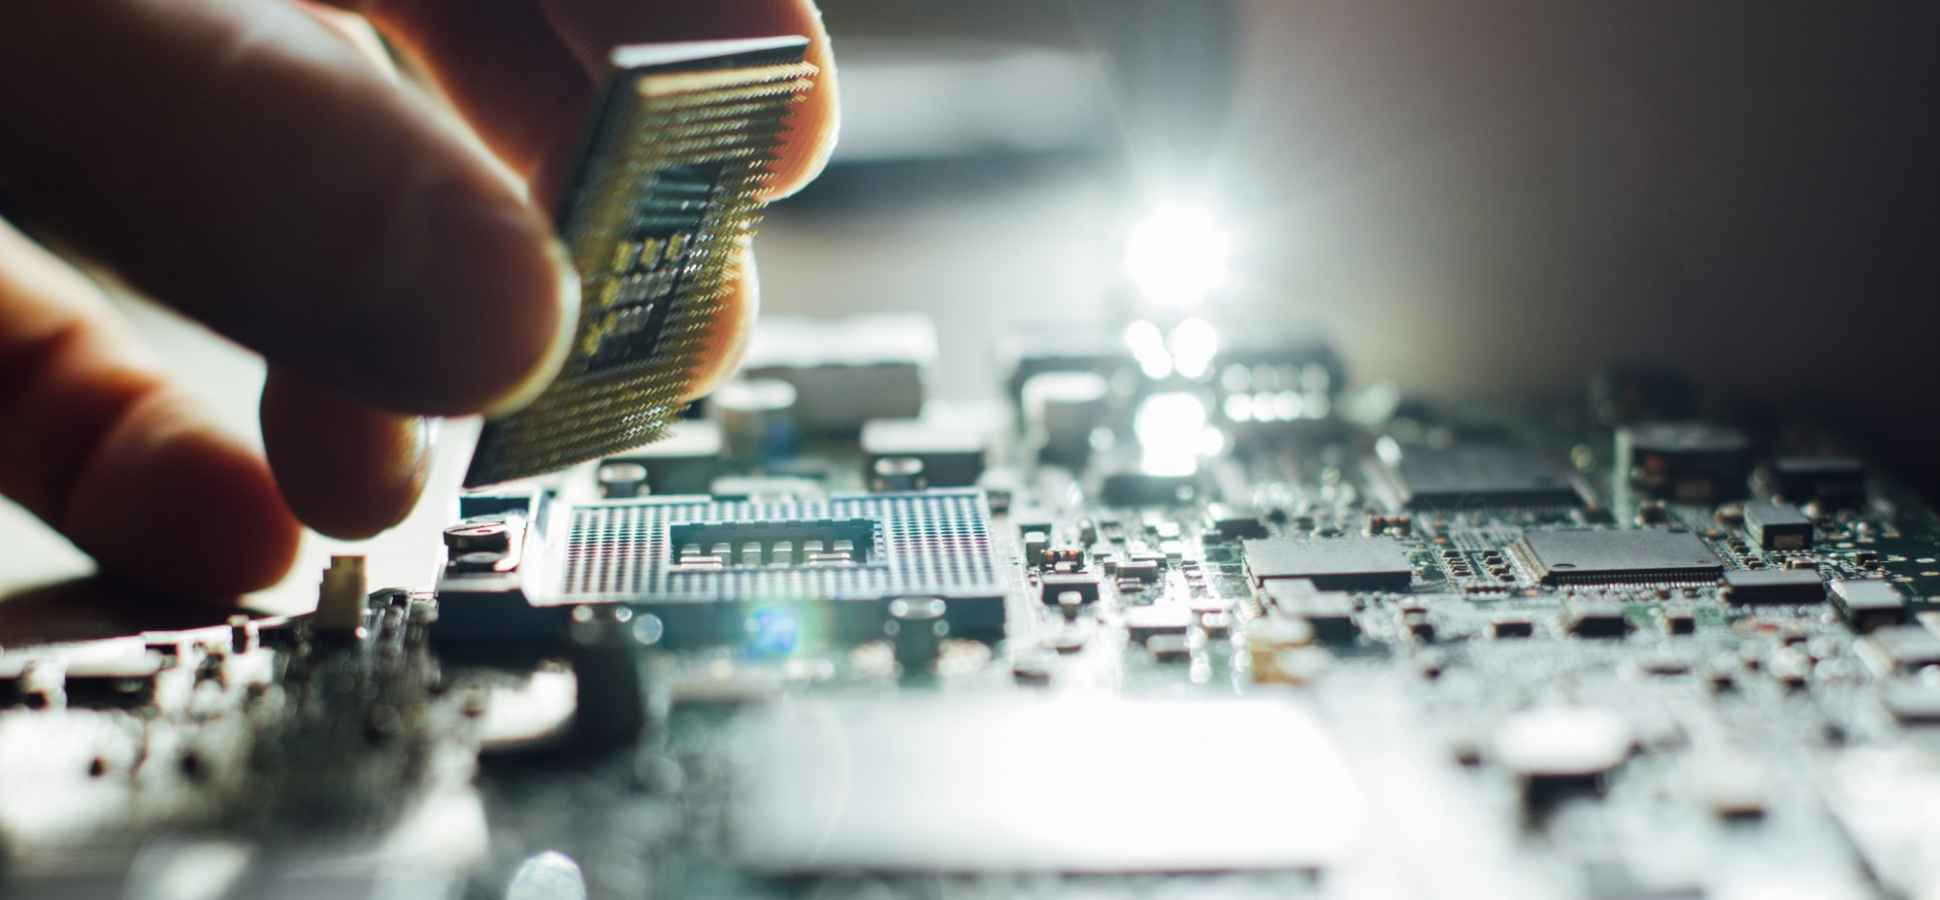 The End of Moore's Law Will Change How We Need To Think About Innovation